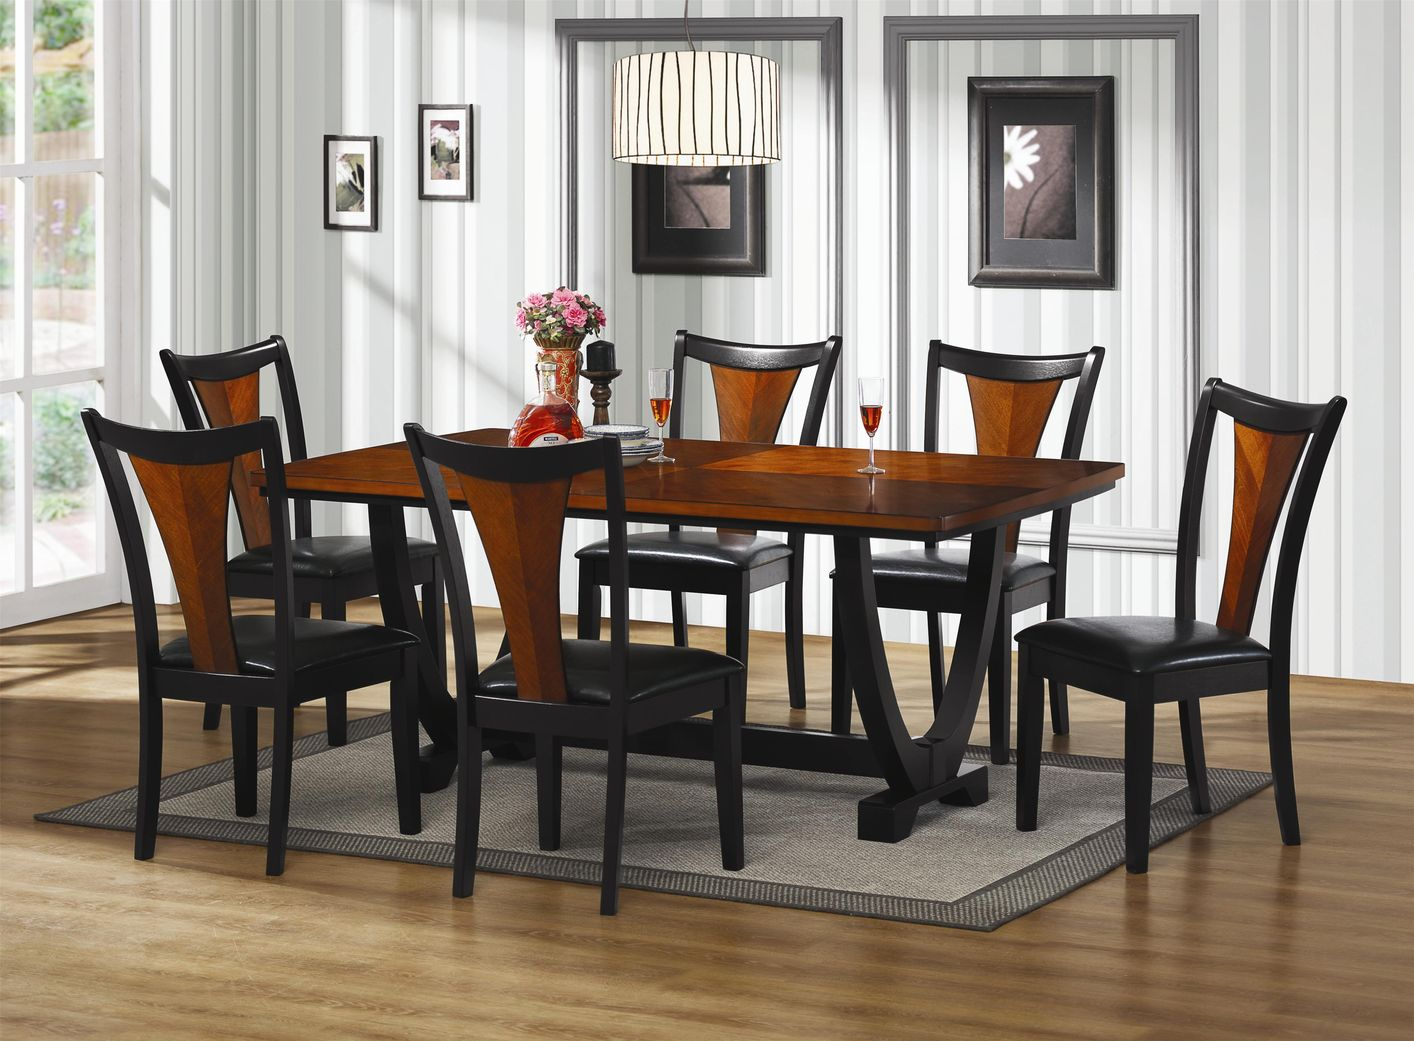 Beau Boyer Black And Cherry Wood Dining Table Set